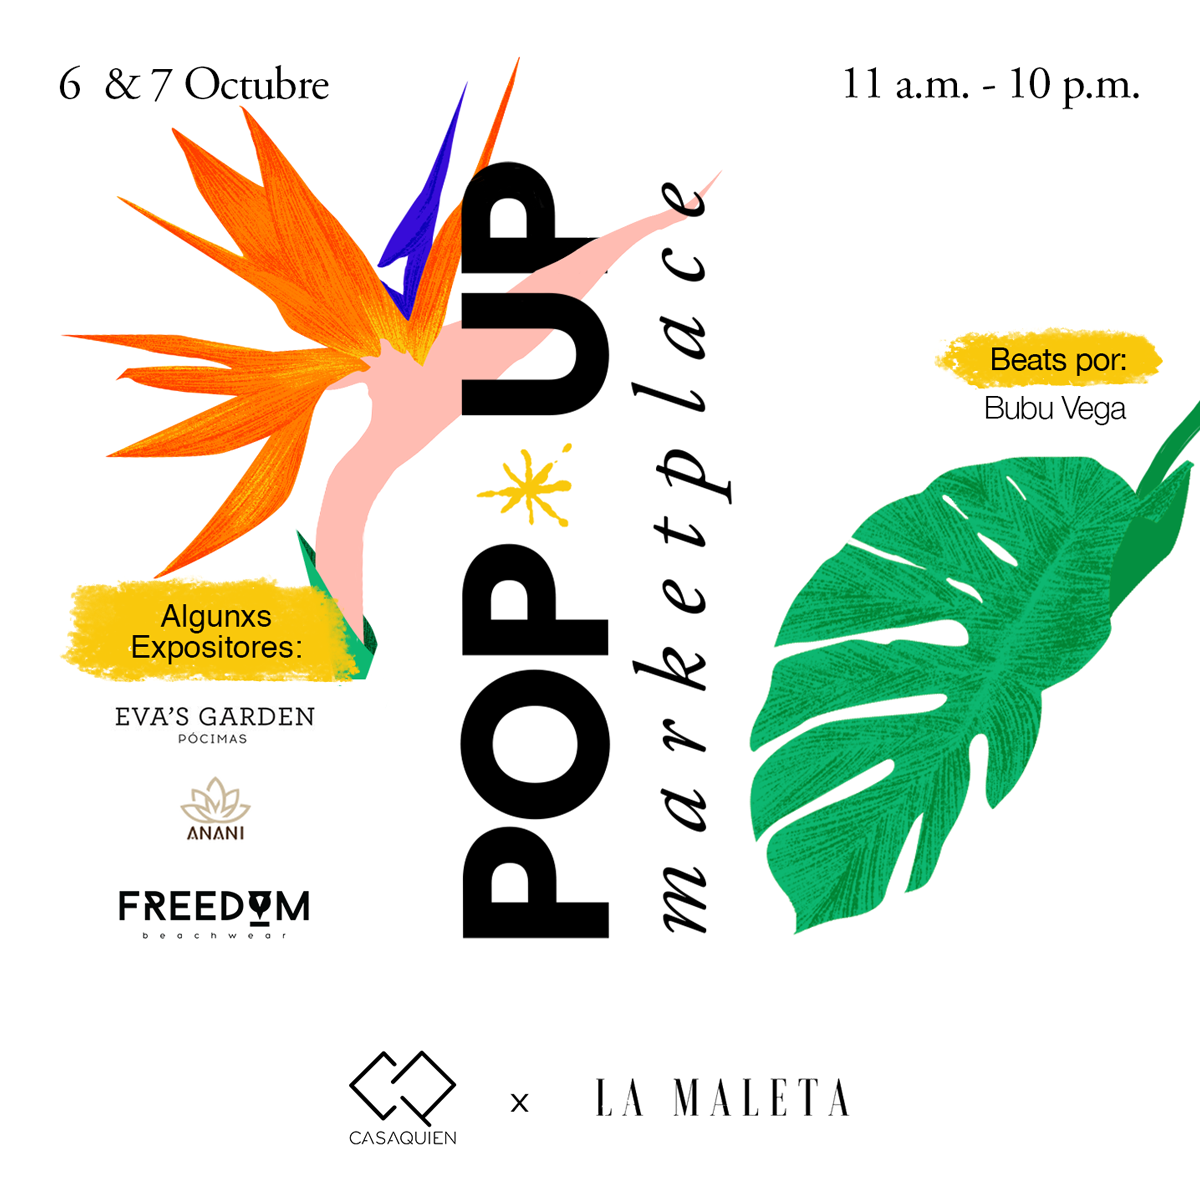 Social media content and logo design for my friends at Casa Quien and their Pop-up marketplace.